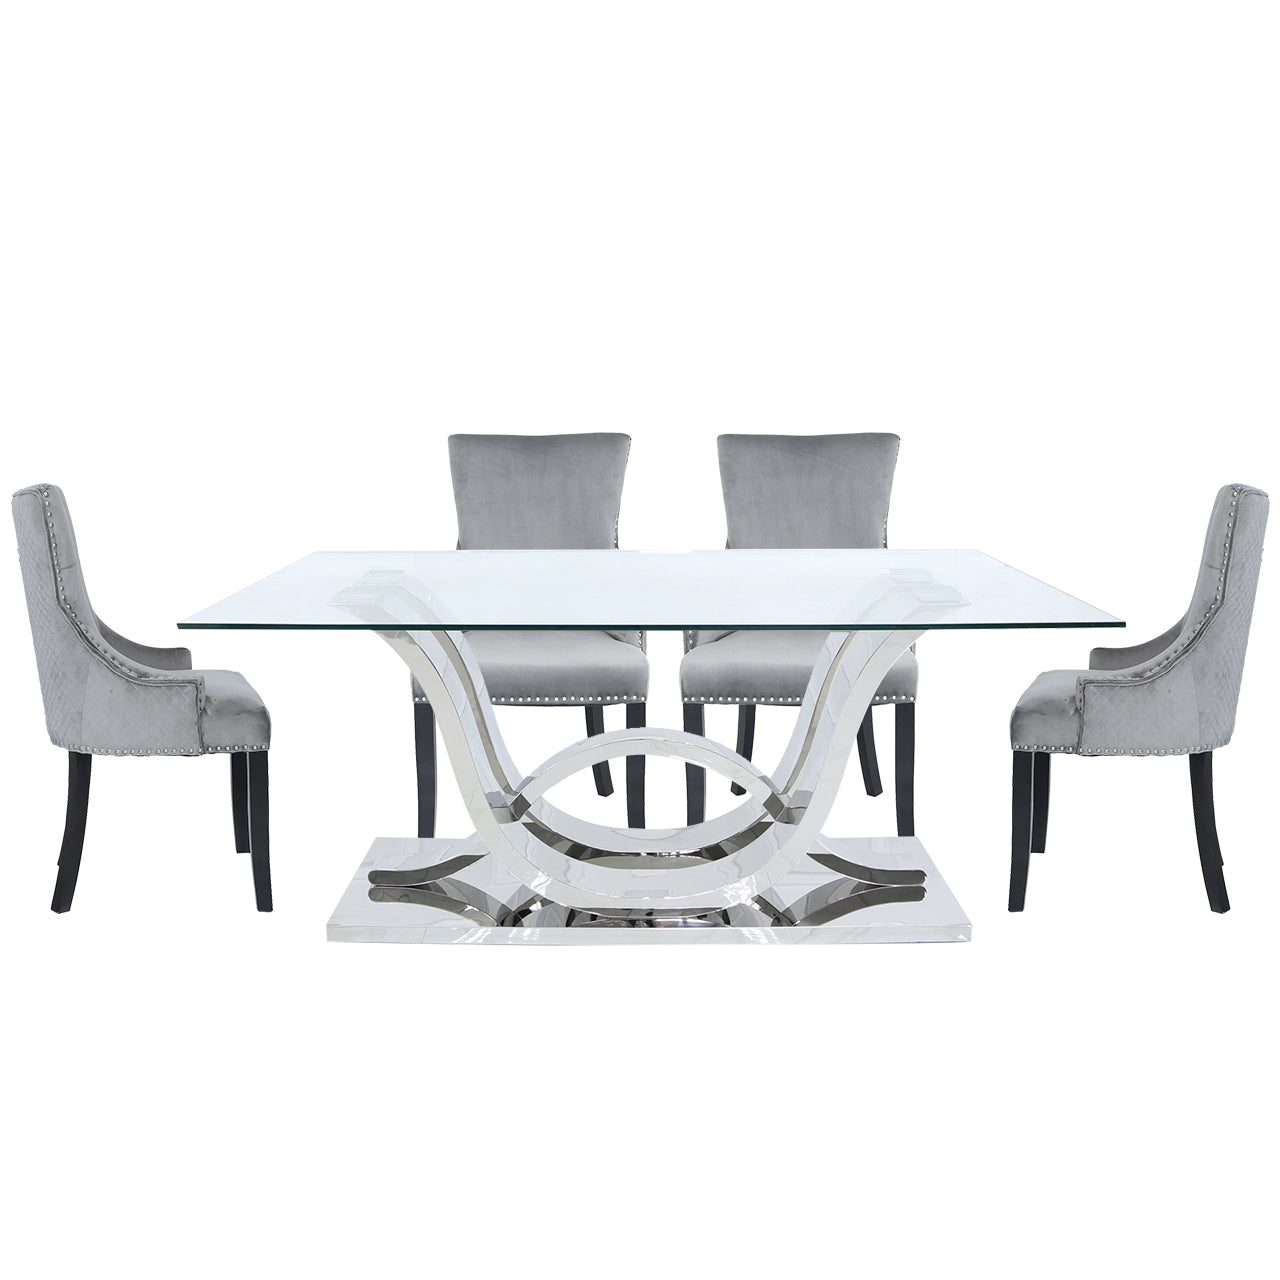 Carvelle Dining Set With 6 Grey Chairs